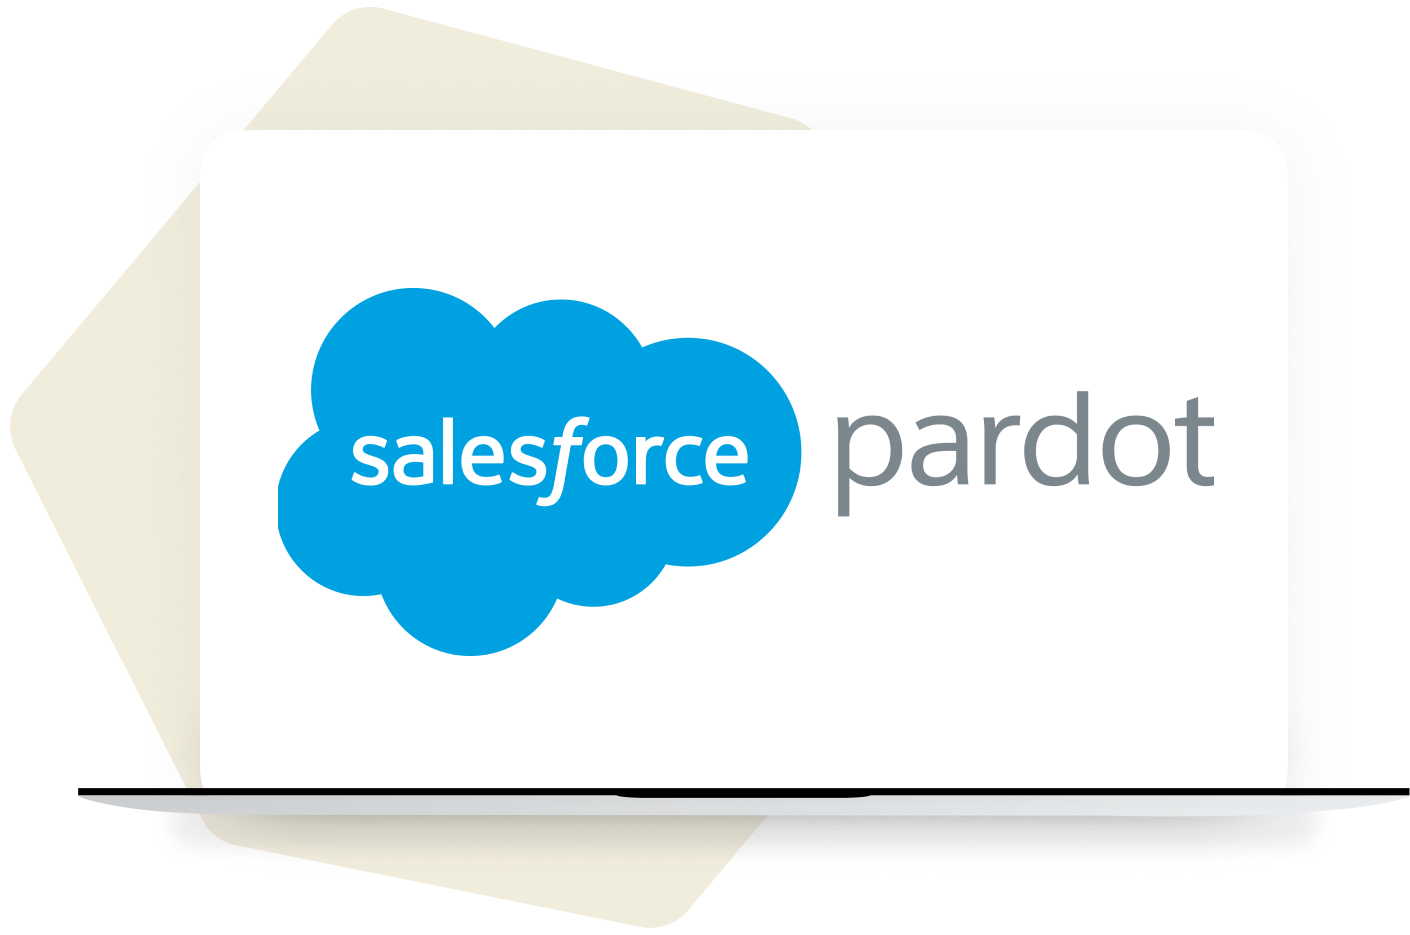 pardot marketing automation agency in new york